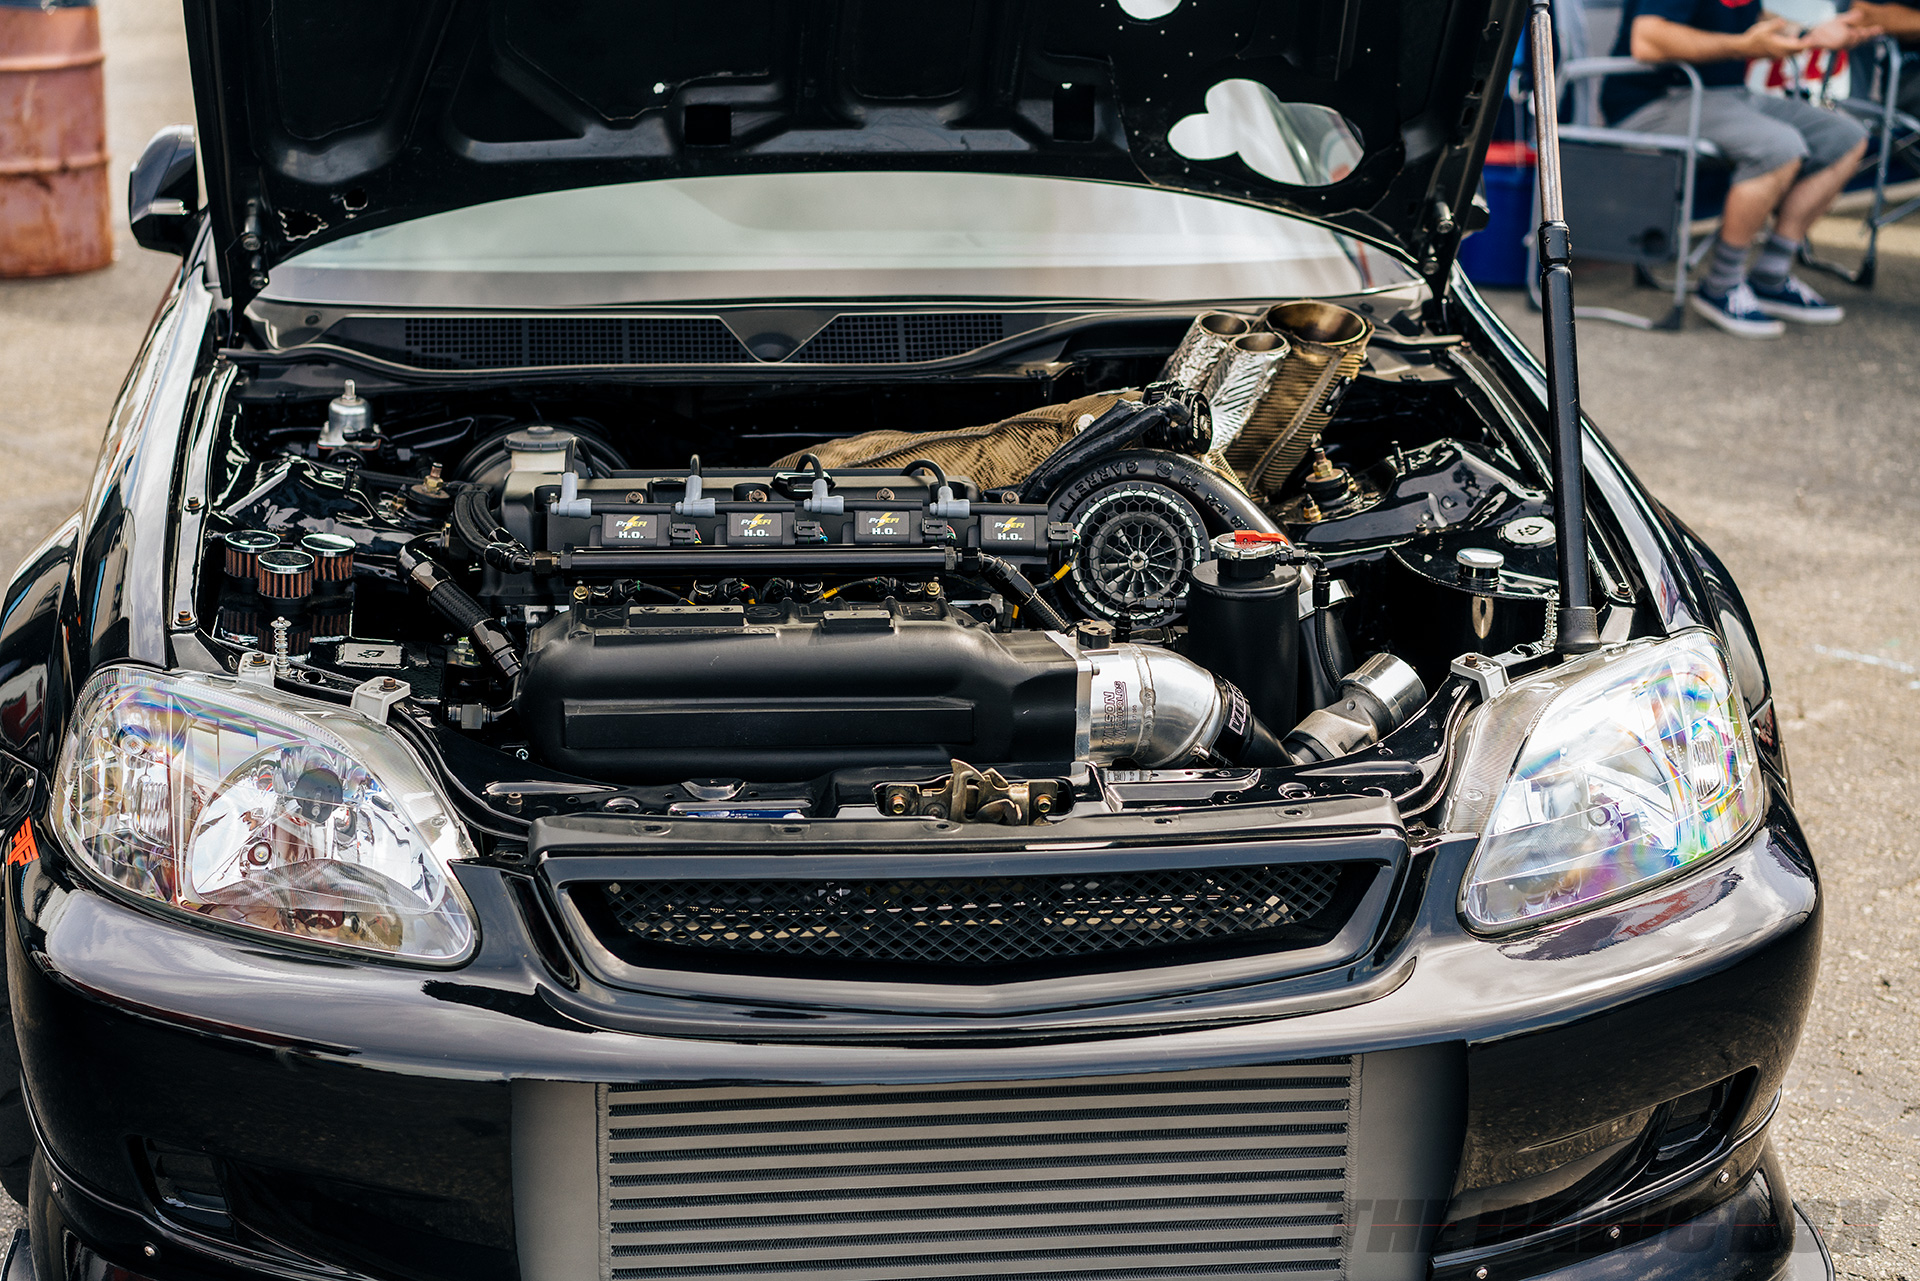 14th Annual Eibach Honda Meet, Turbocharged Civic